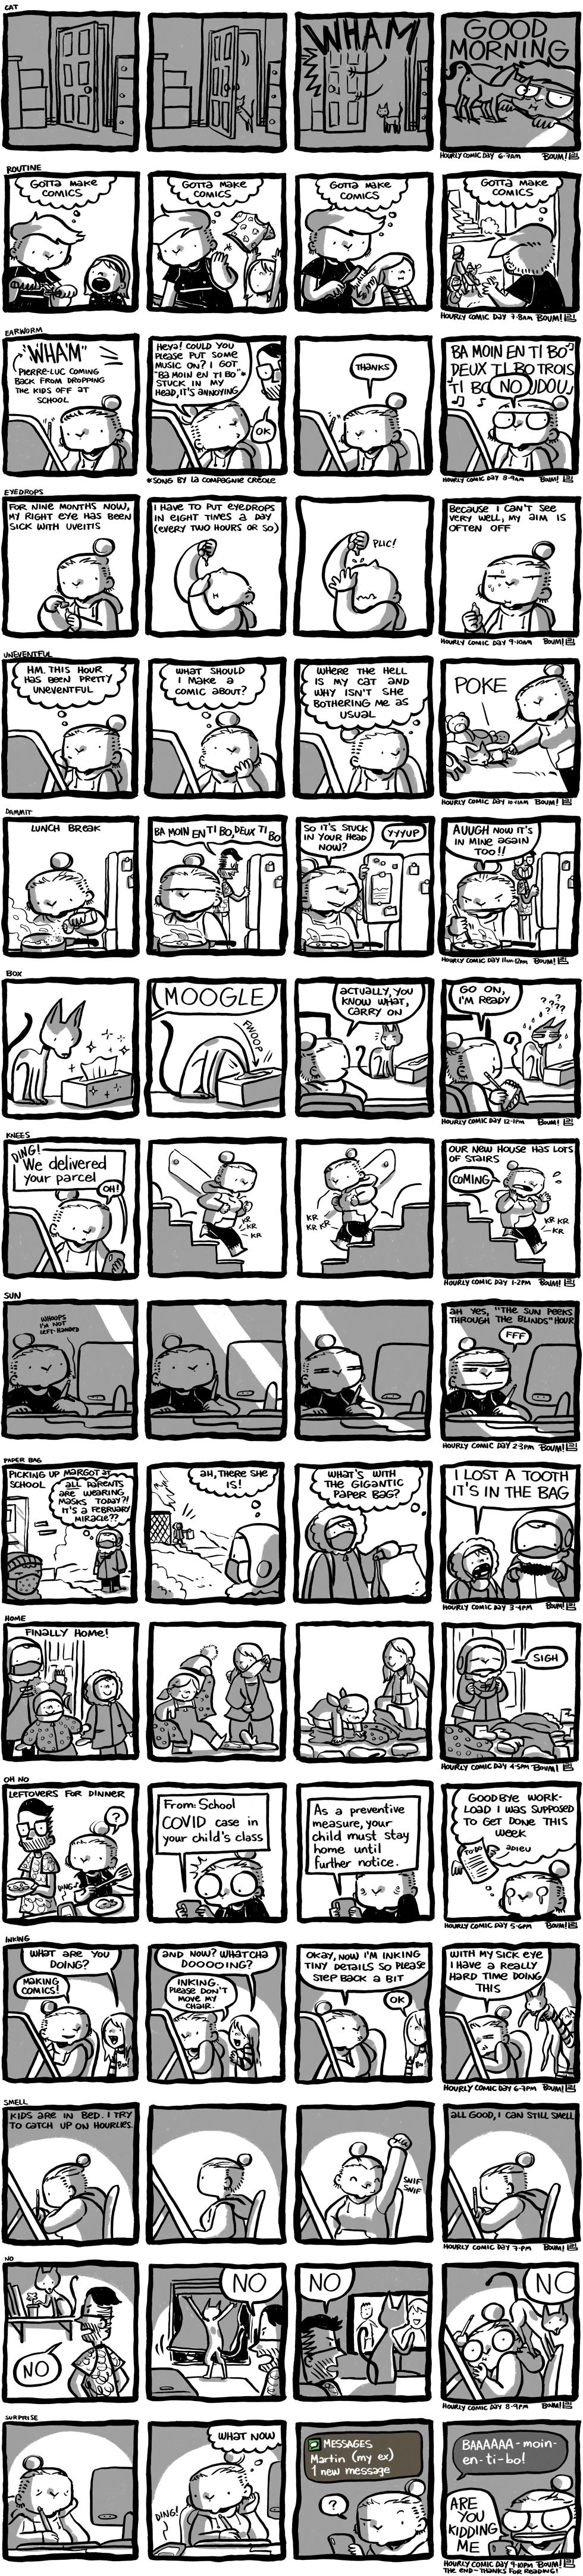 Hourly Comic Day 2021